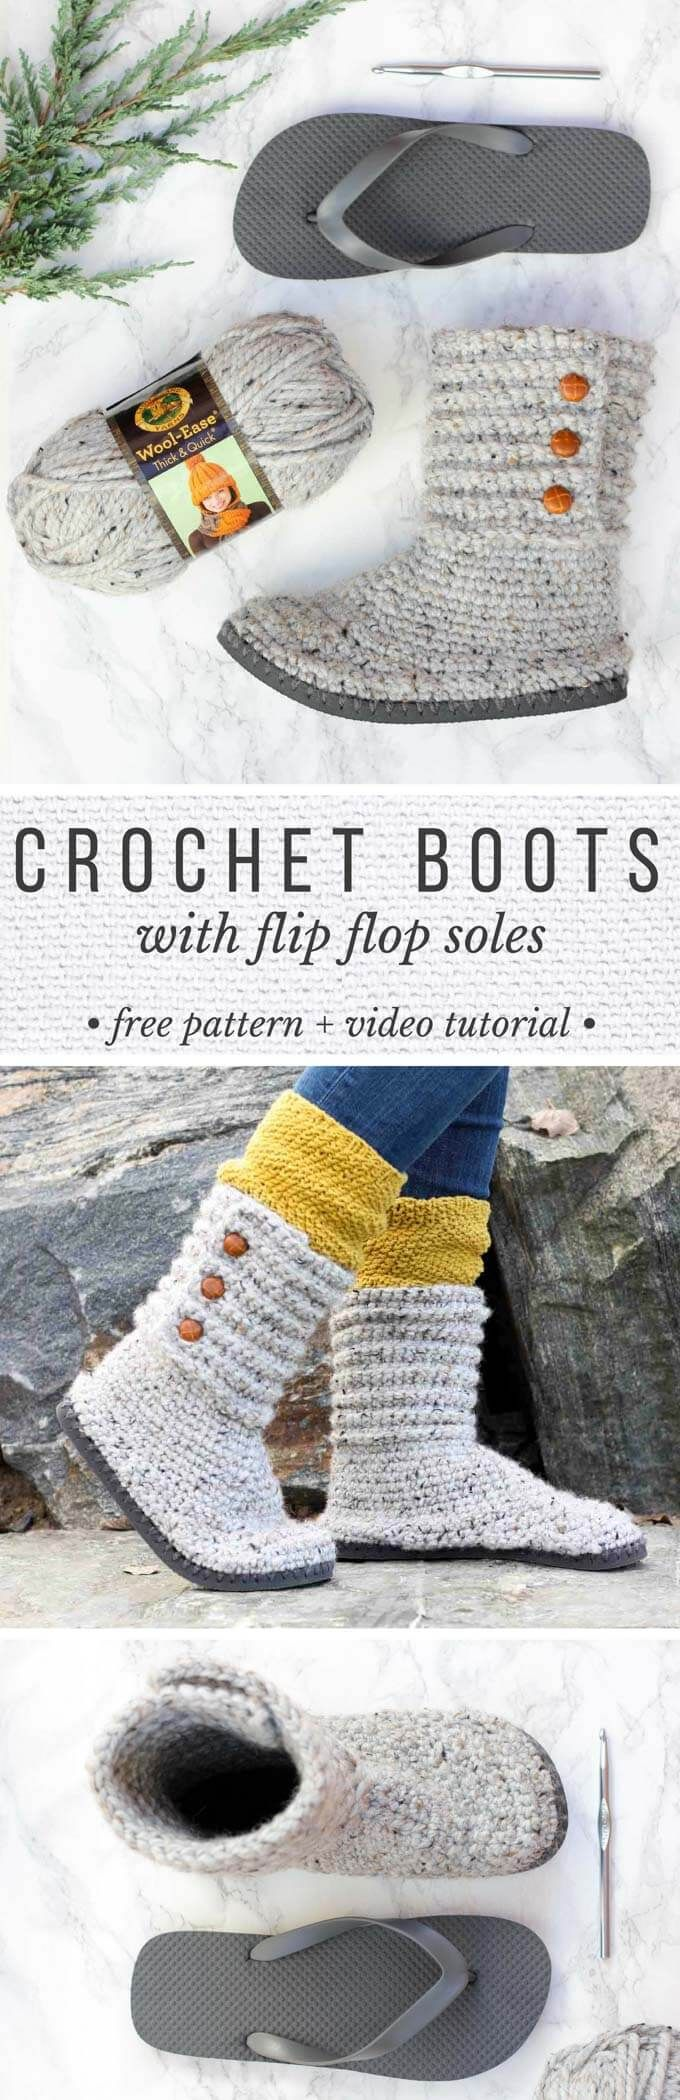 Best 25 crochet slipper boots ideas on pinterest crochet boots how to crochet boots with flip flops free pattern video tutorial bankloansurffo Choice Image